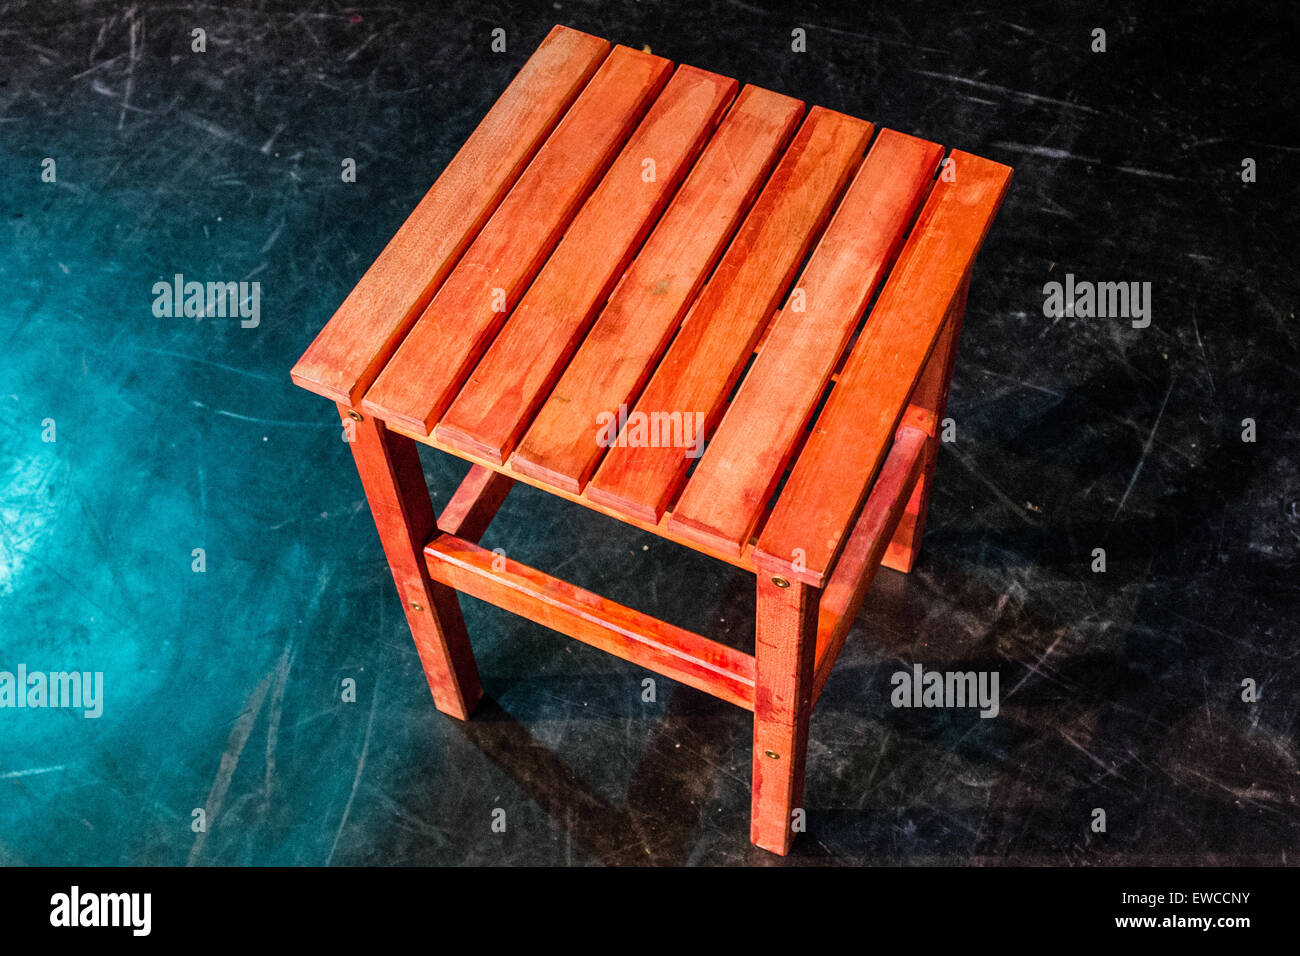 Miraculous Small Four Legged Wooden Step Stool Over Black Stock Photo Andrewgaddart Wooden Chair Designs For Living Room Andrewgaddartcom